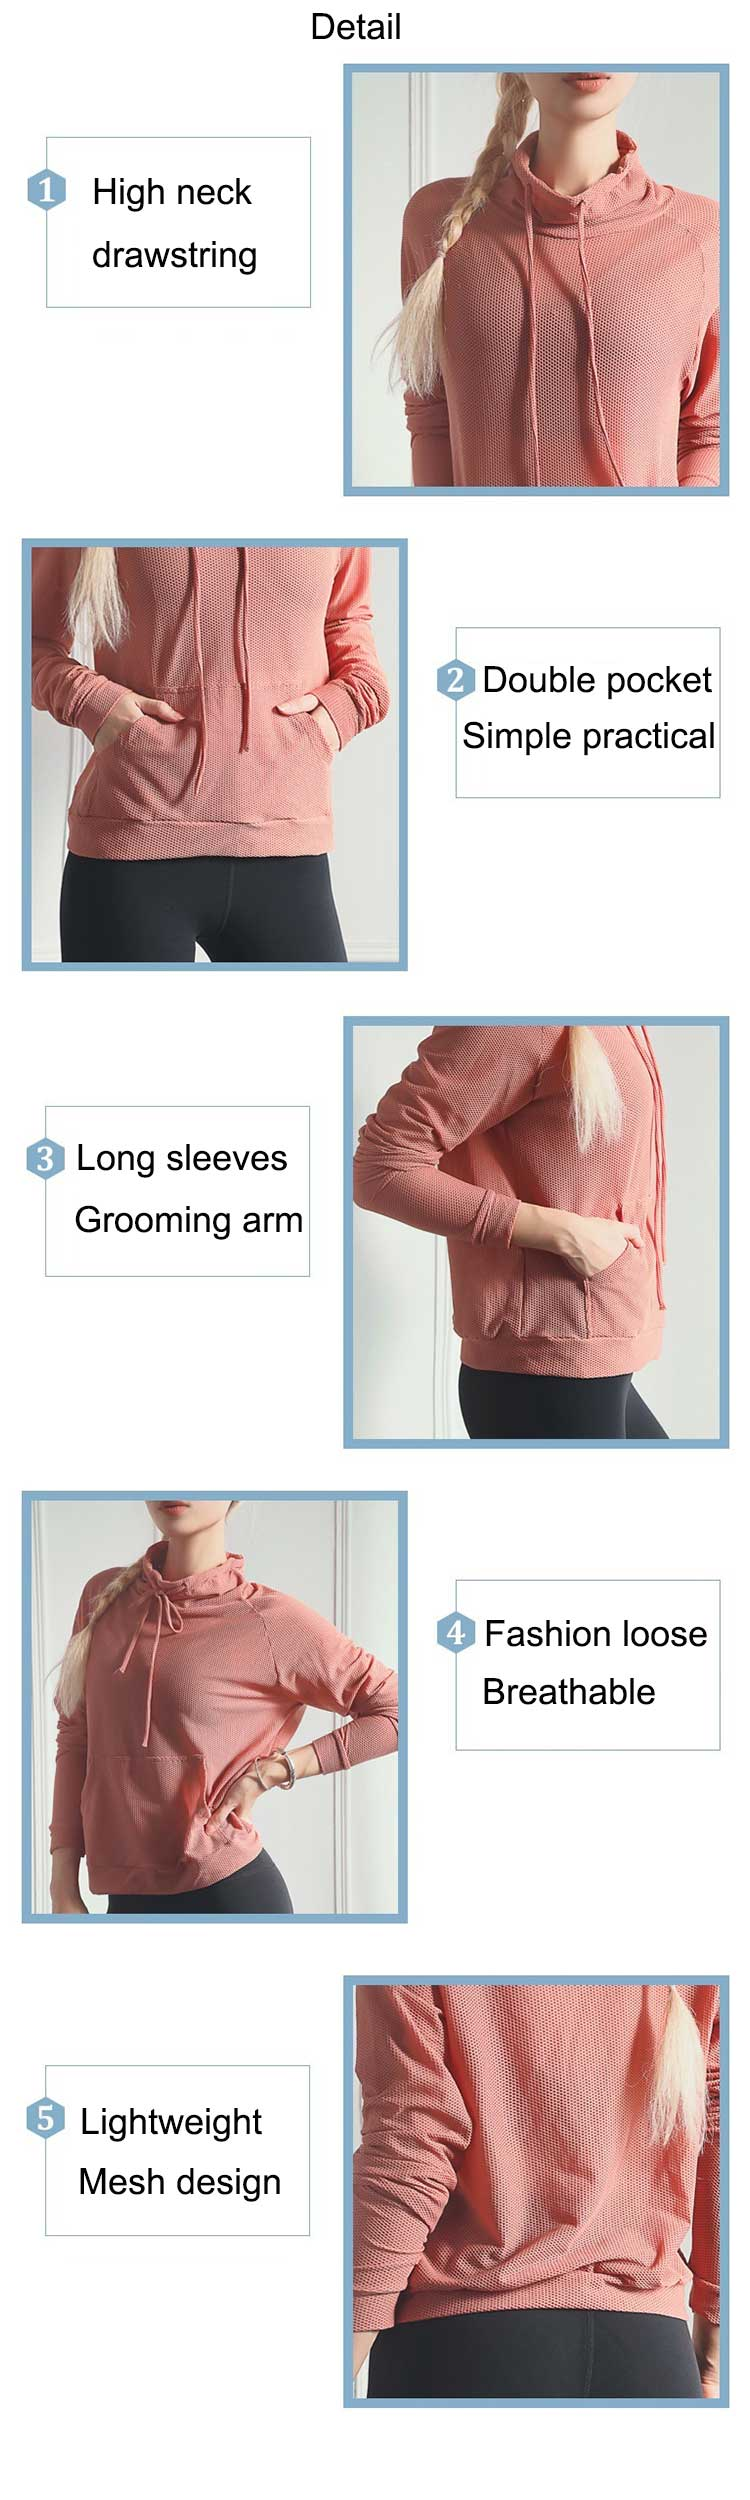 Ladies-running-jacket-uses-professional-sports-fabrics--with-light-and-breathable-give-you-a-new-sports-experience.-